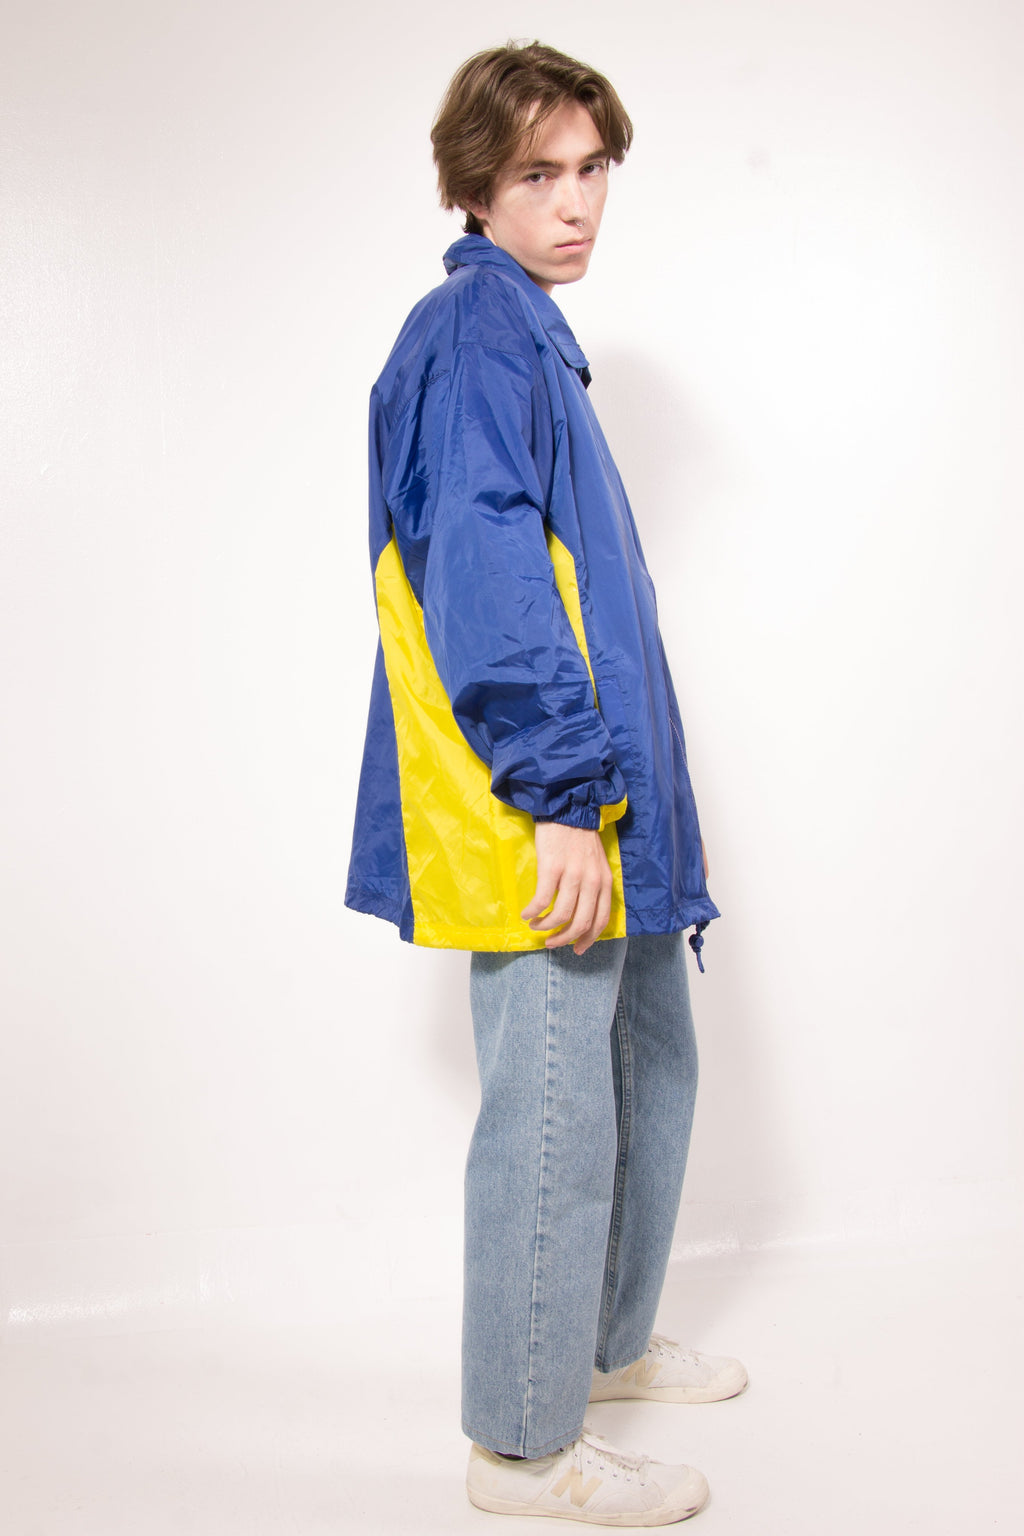 Vintage - blueyellow windbreaker